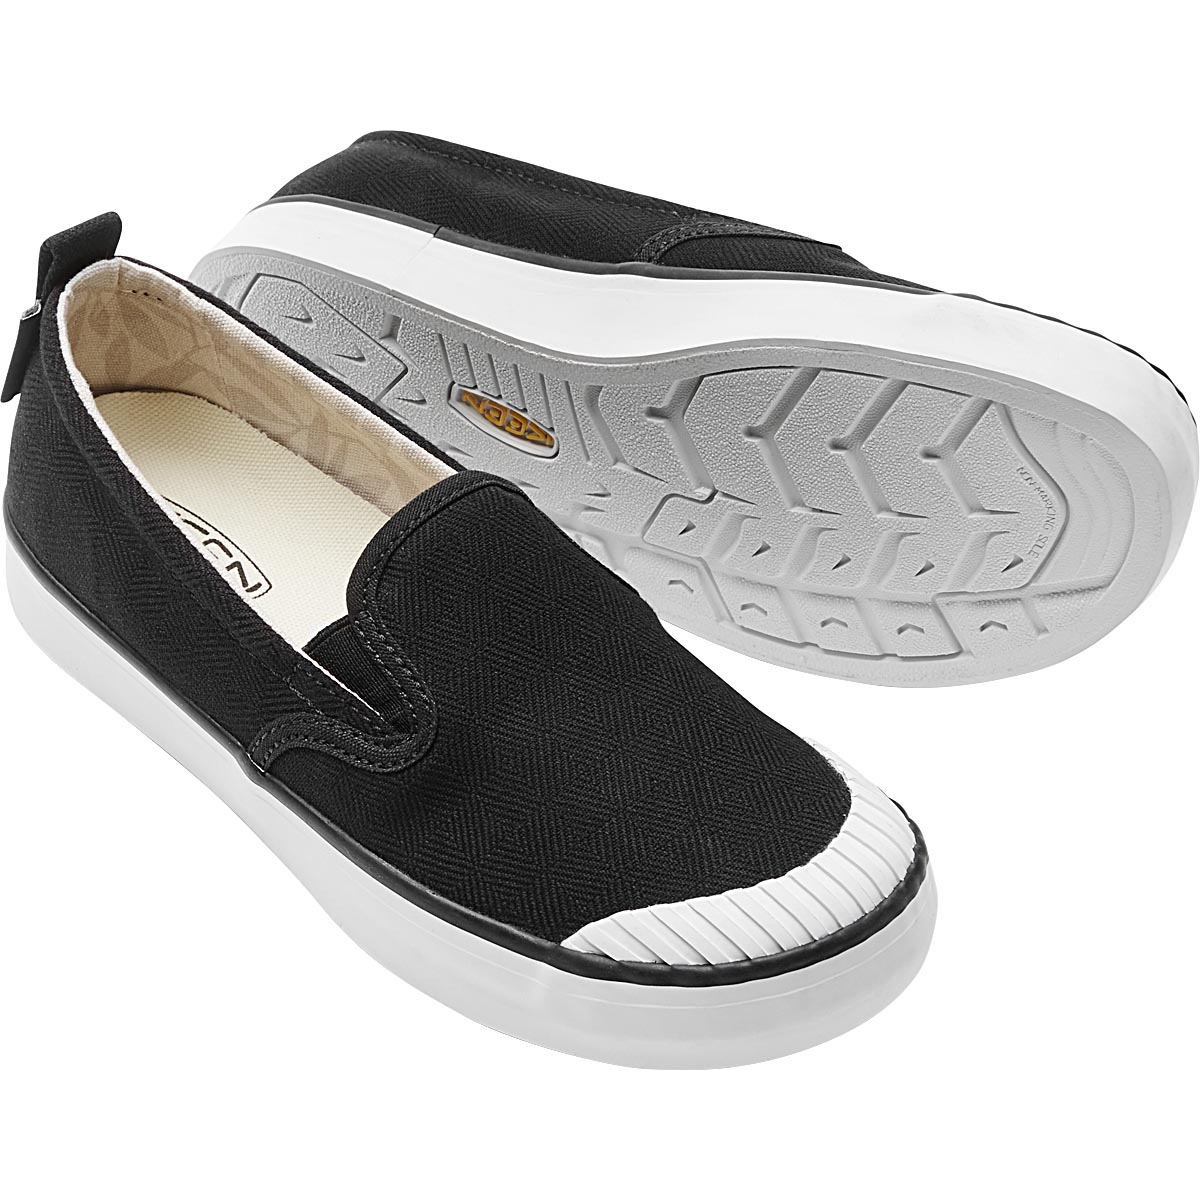 KEEN Women's Elsa Slip On